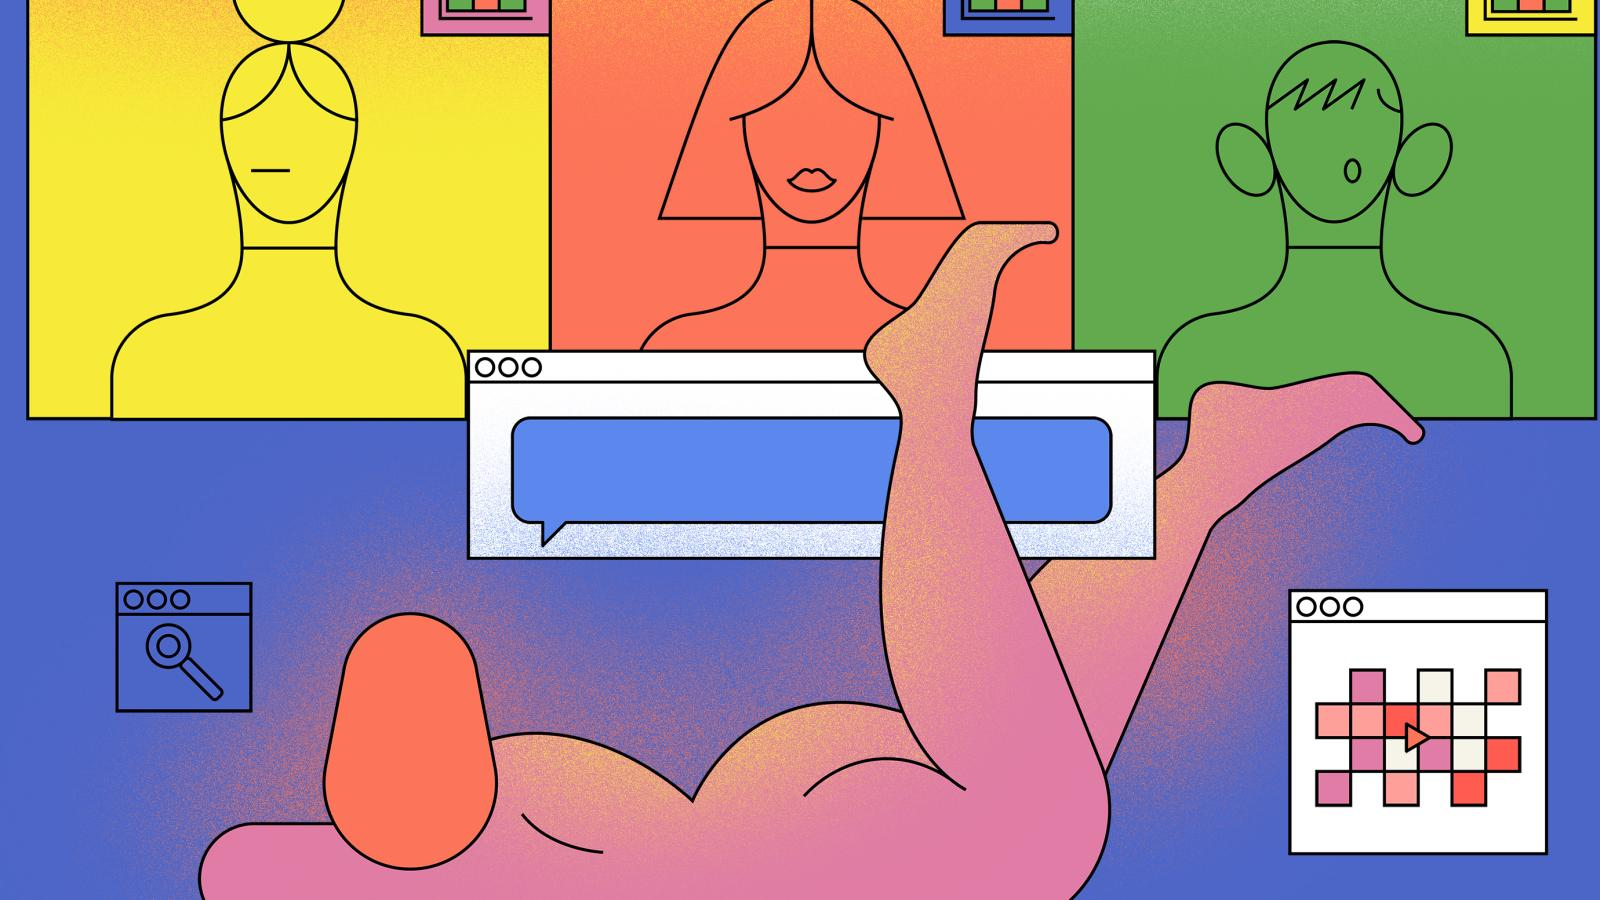 Porn sites collect more user data than Netflix or Hulu. This is what they  do with it.